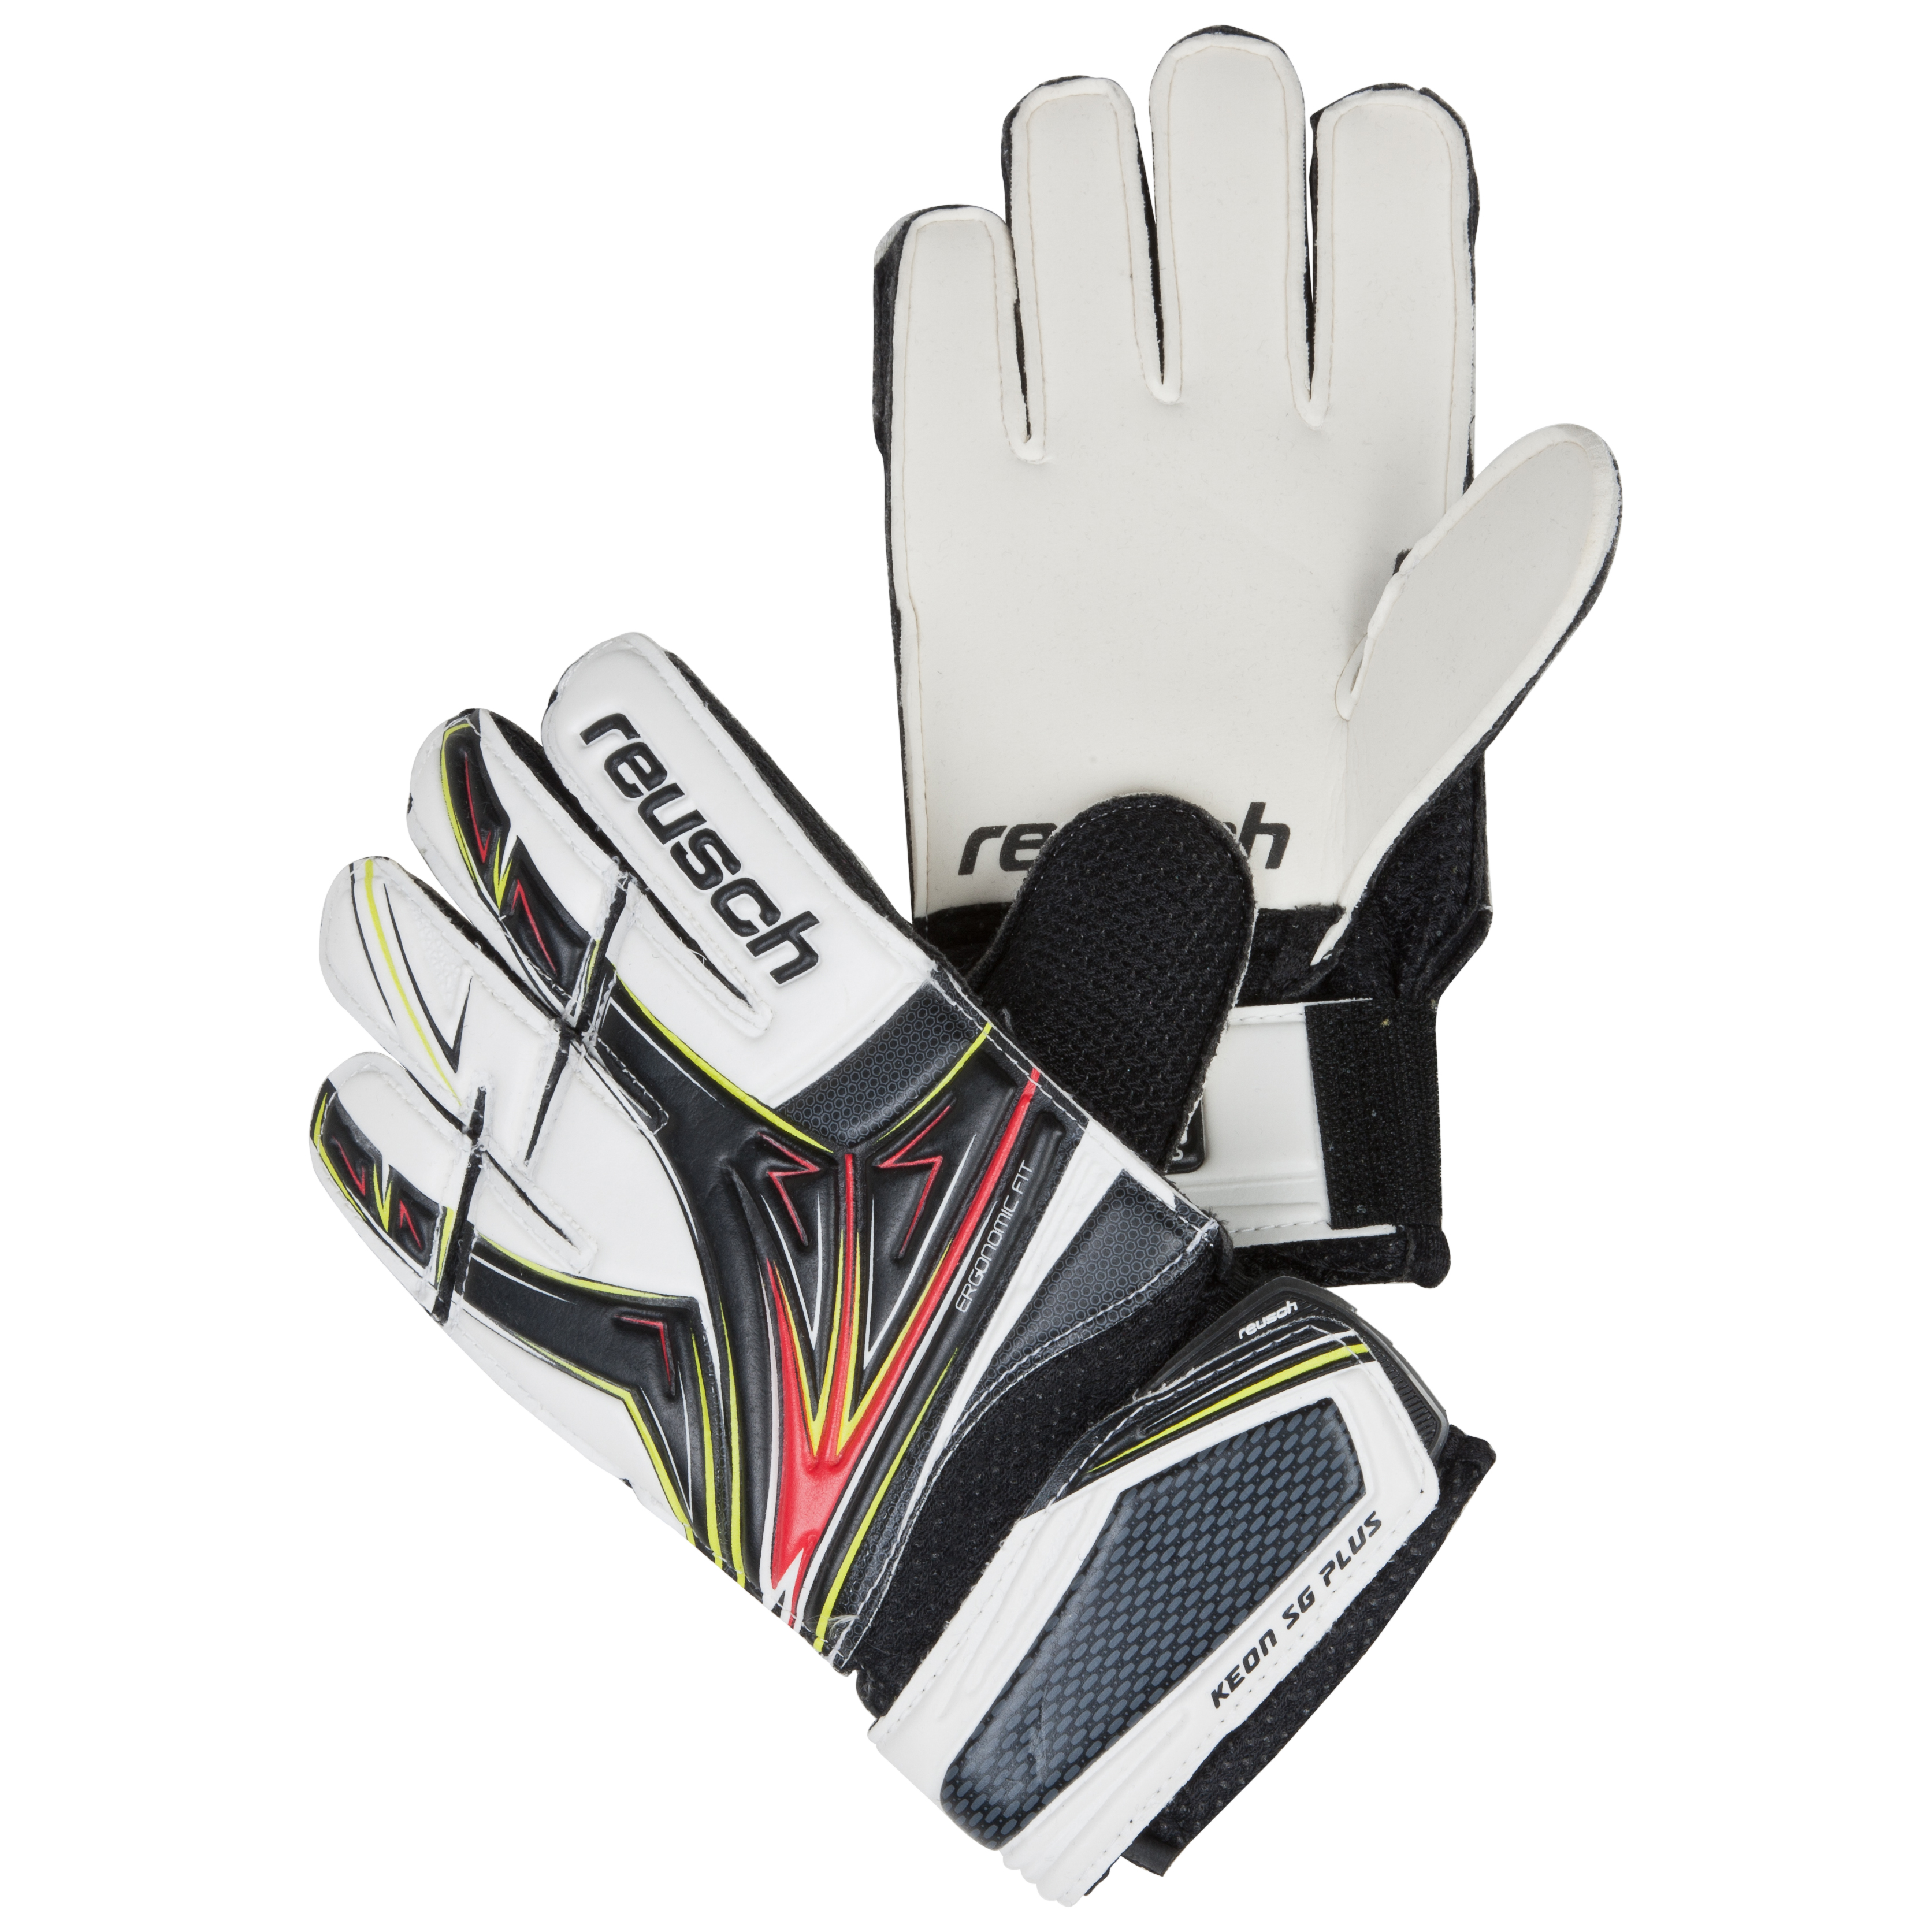 Reusch Keon SG Plus Finger Support Goalkeeper Gloves - Kids-Black/White